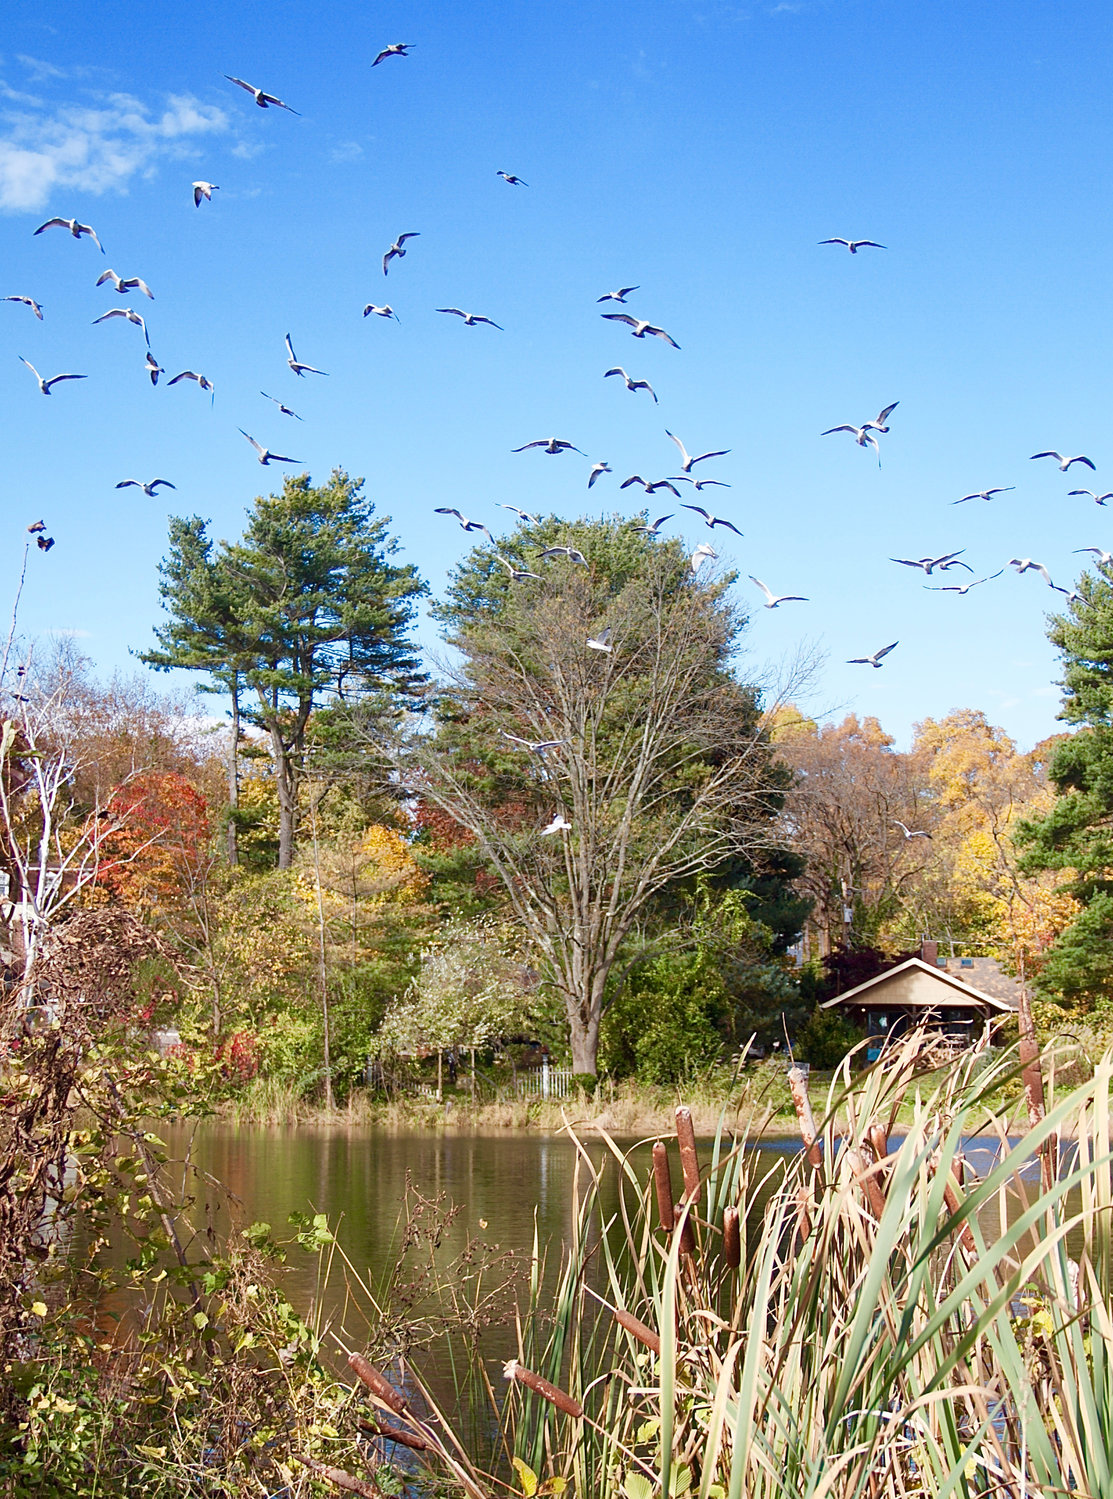 A flock of seagulls soars above Scudders Pond.